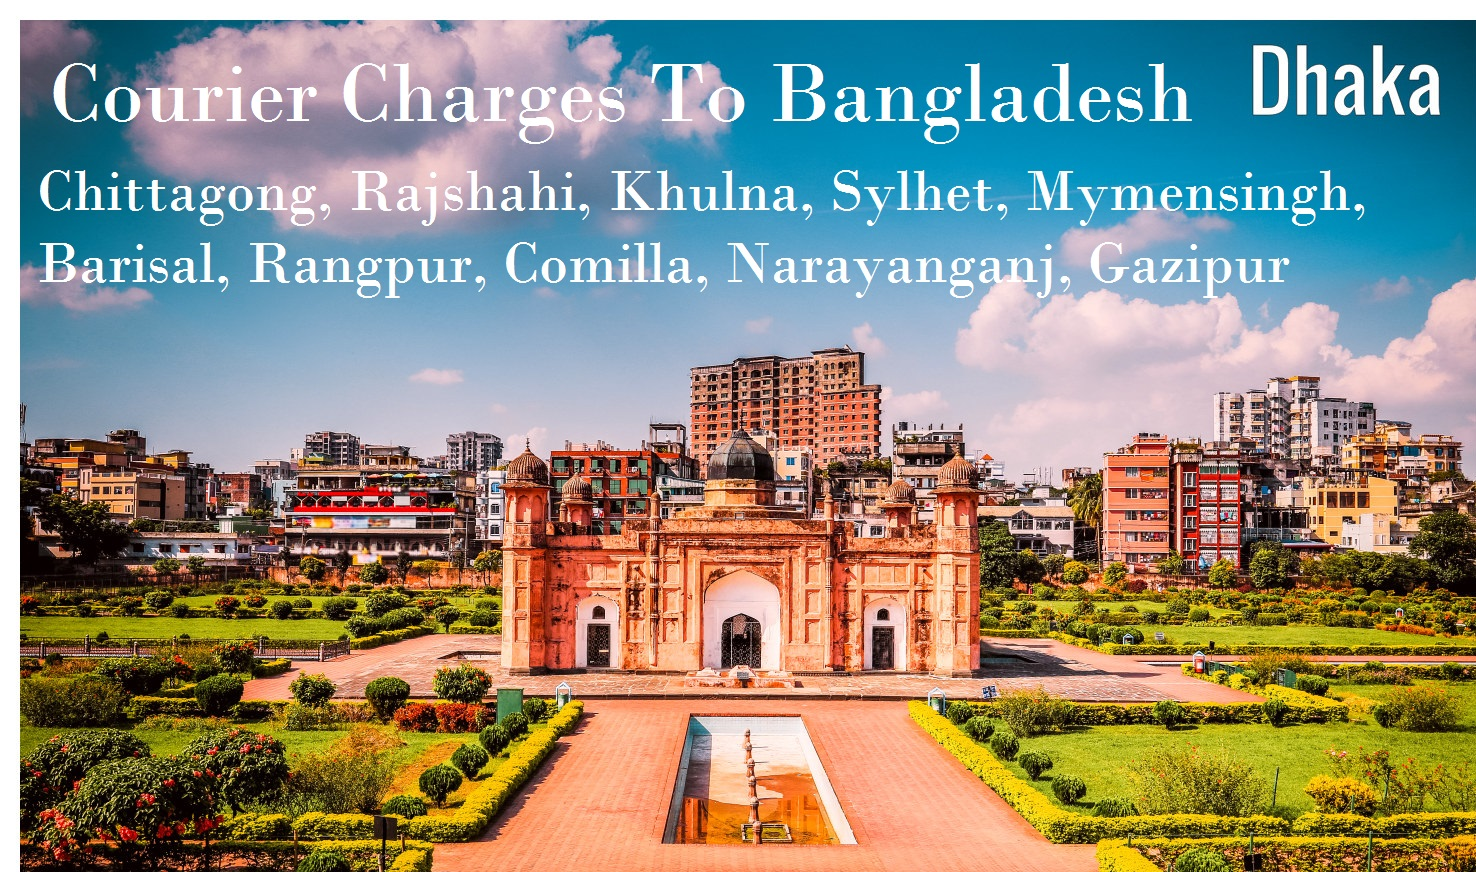 Courier Charges For Khulna